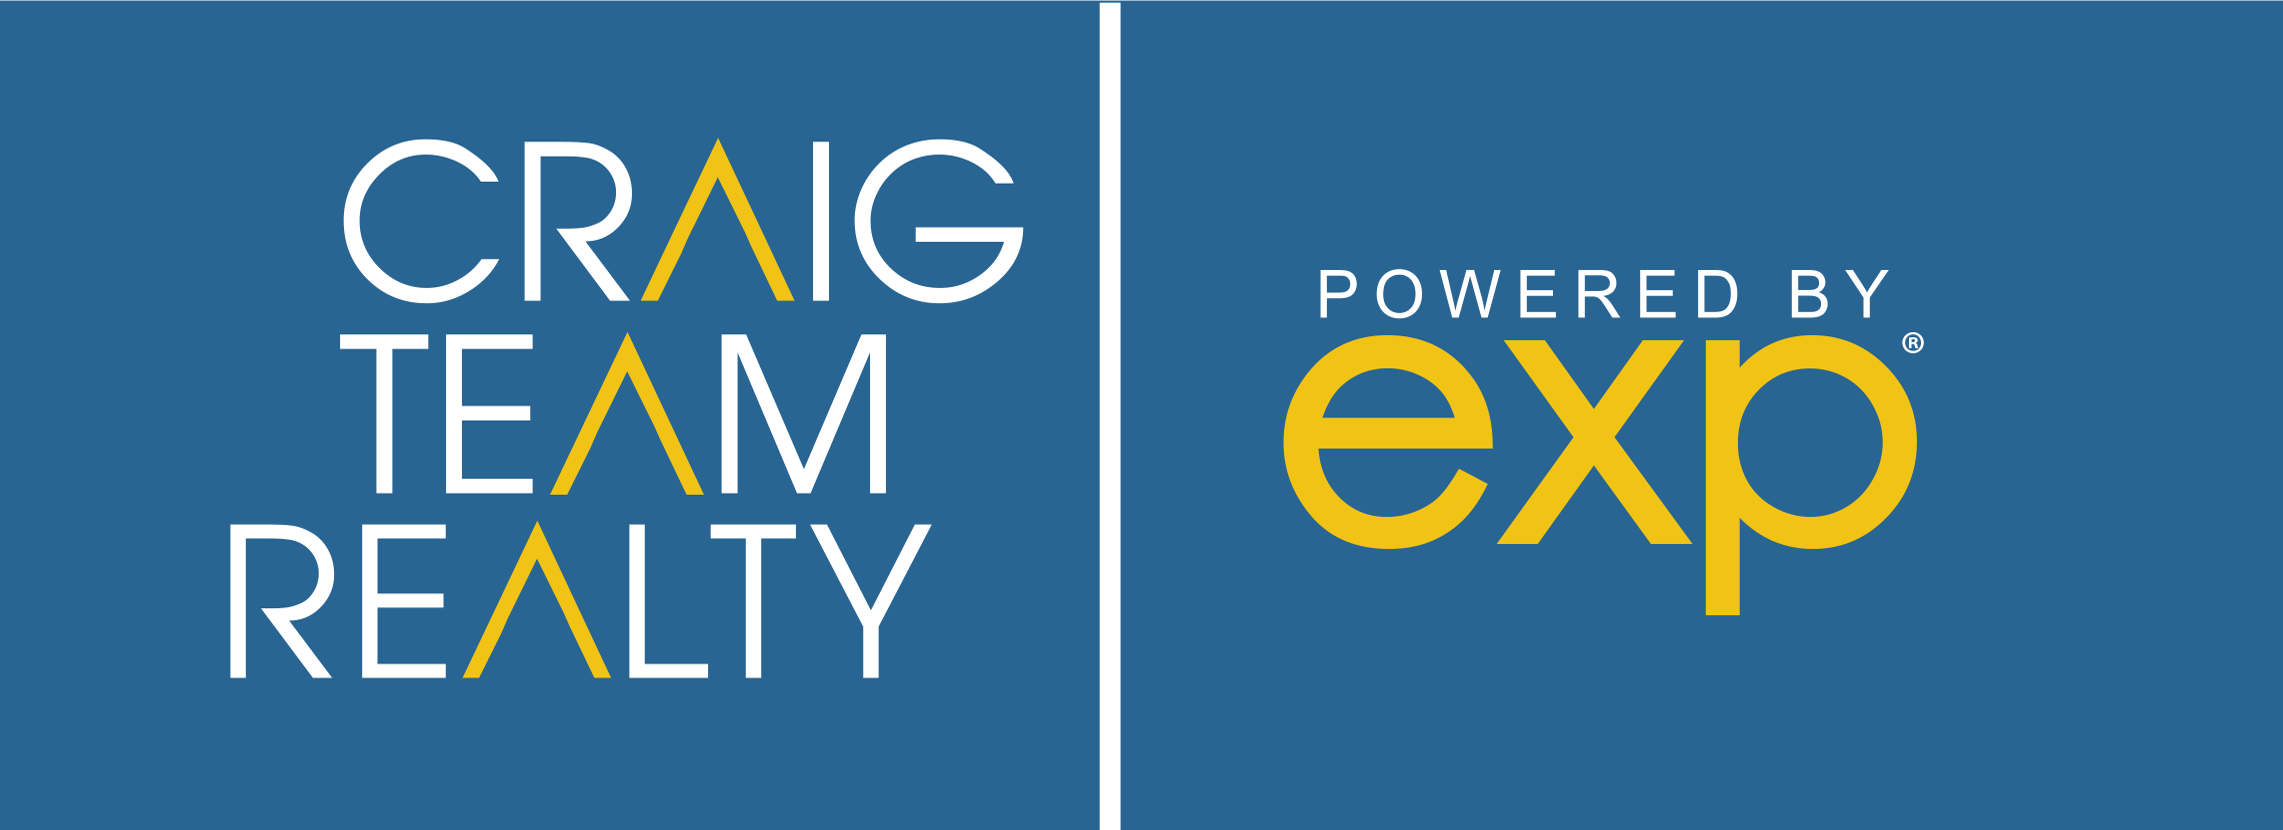 Craig Team Realty, eXp logo